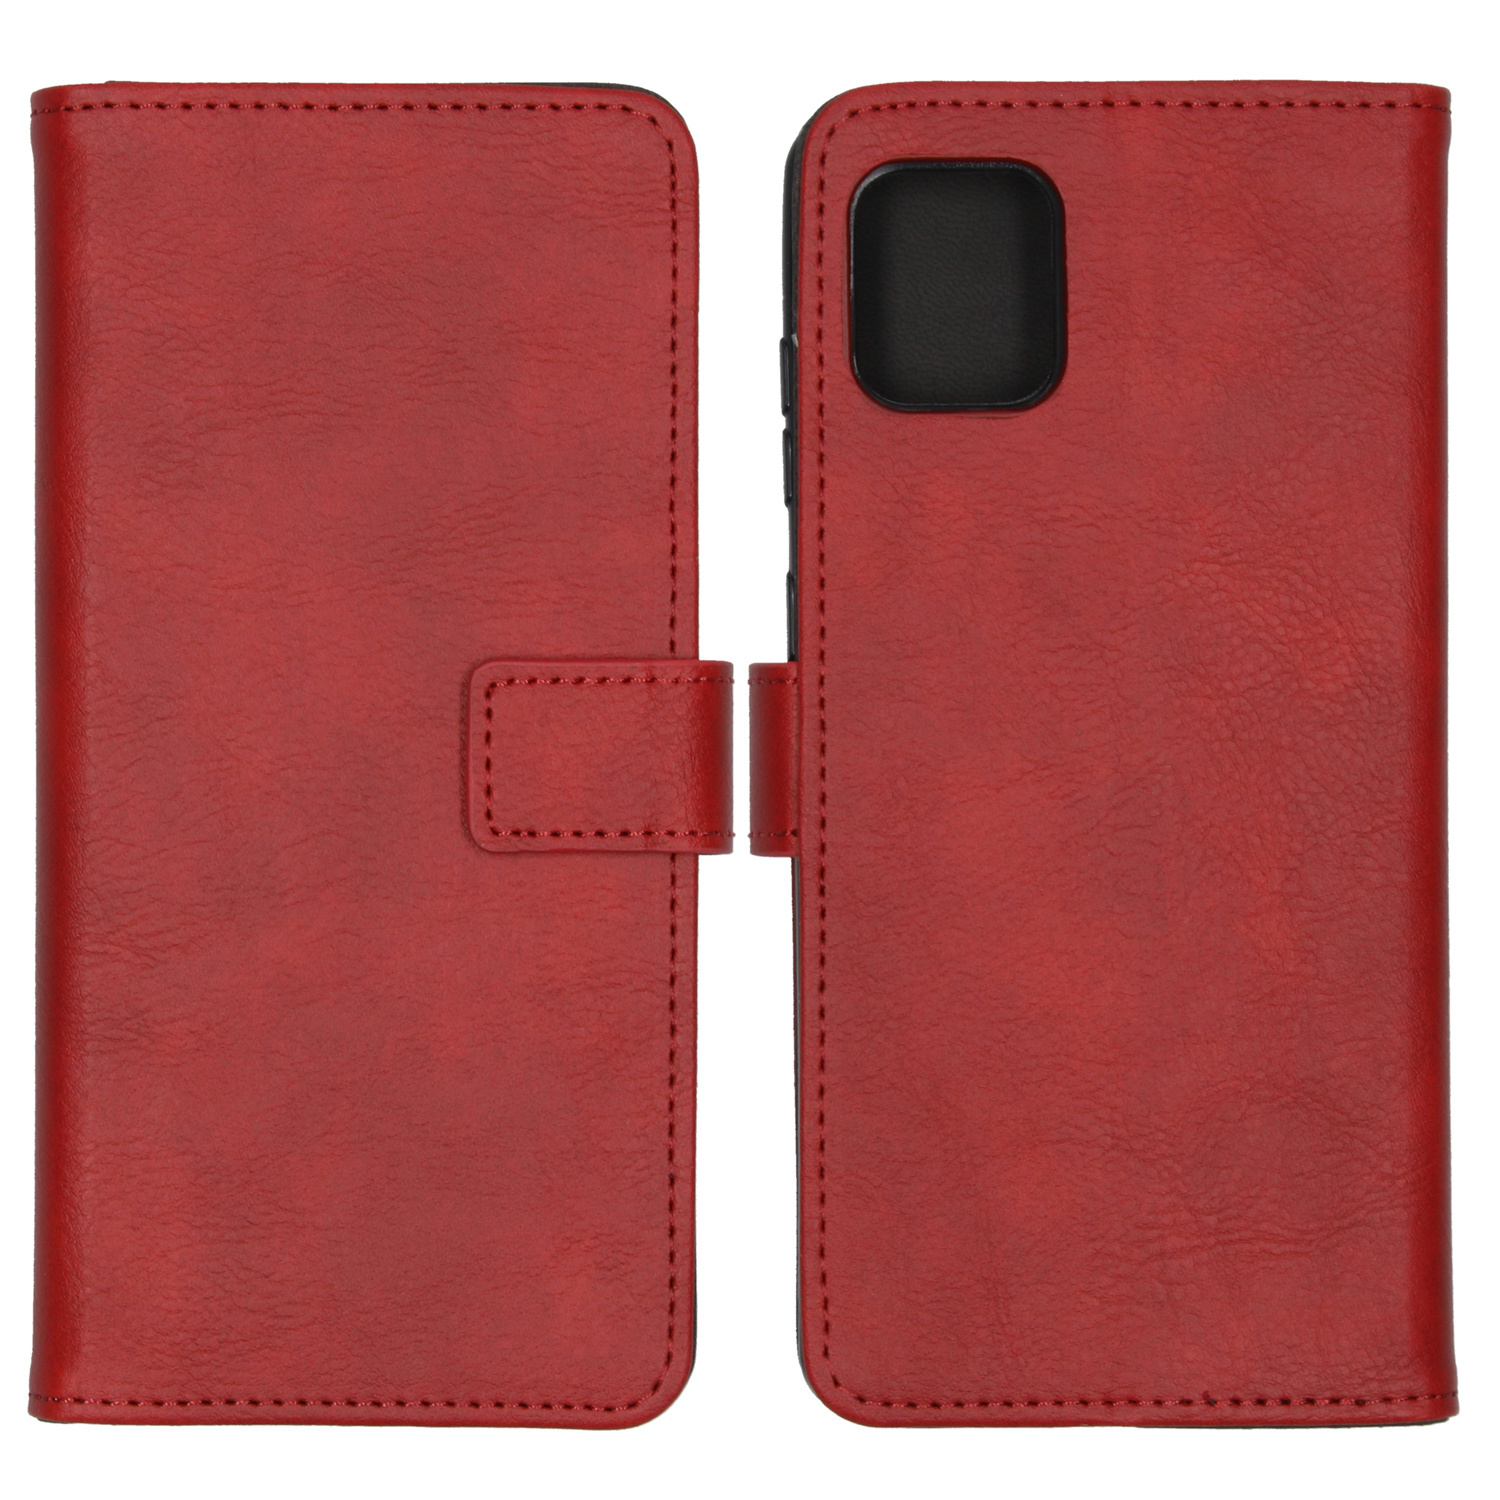 iMoshion Luxe Booktype Samsung Galaxy Note 10 Lite - Rood